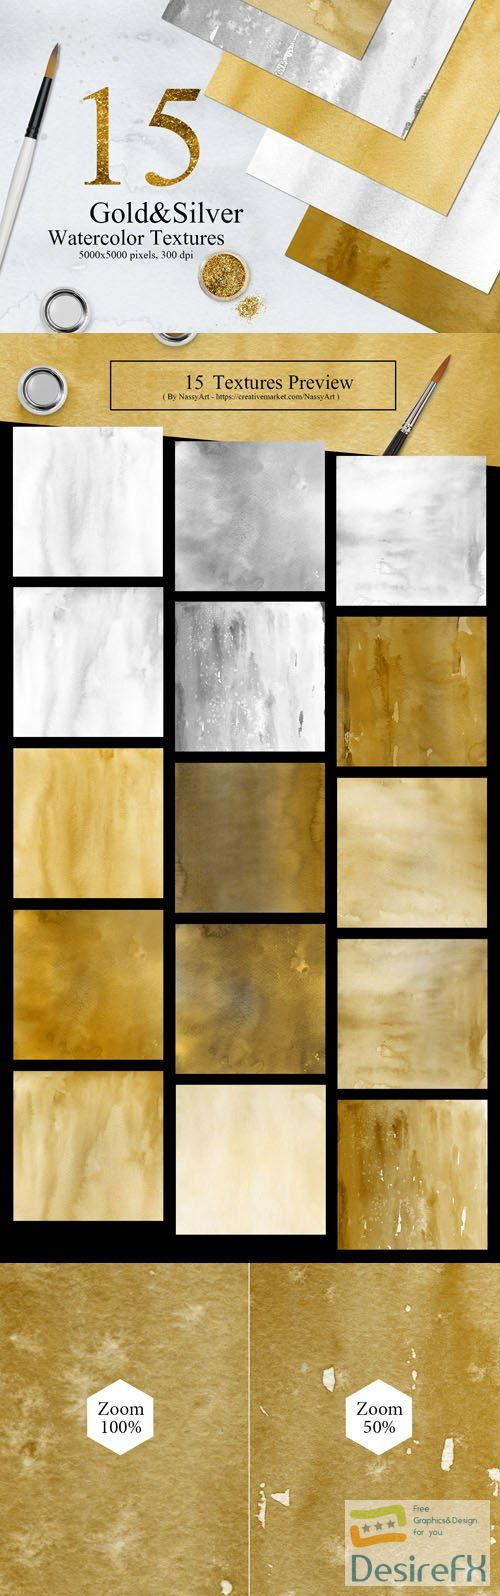 15 Gold & Silver Colors Watercolor Textures Collection